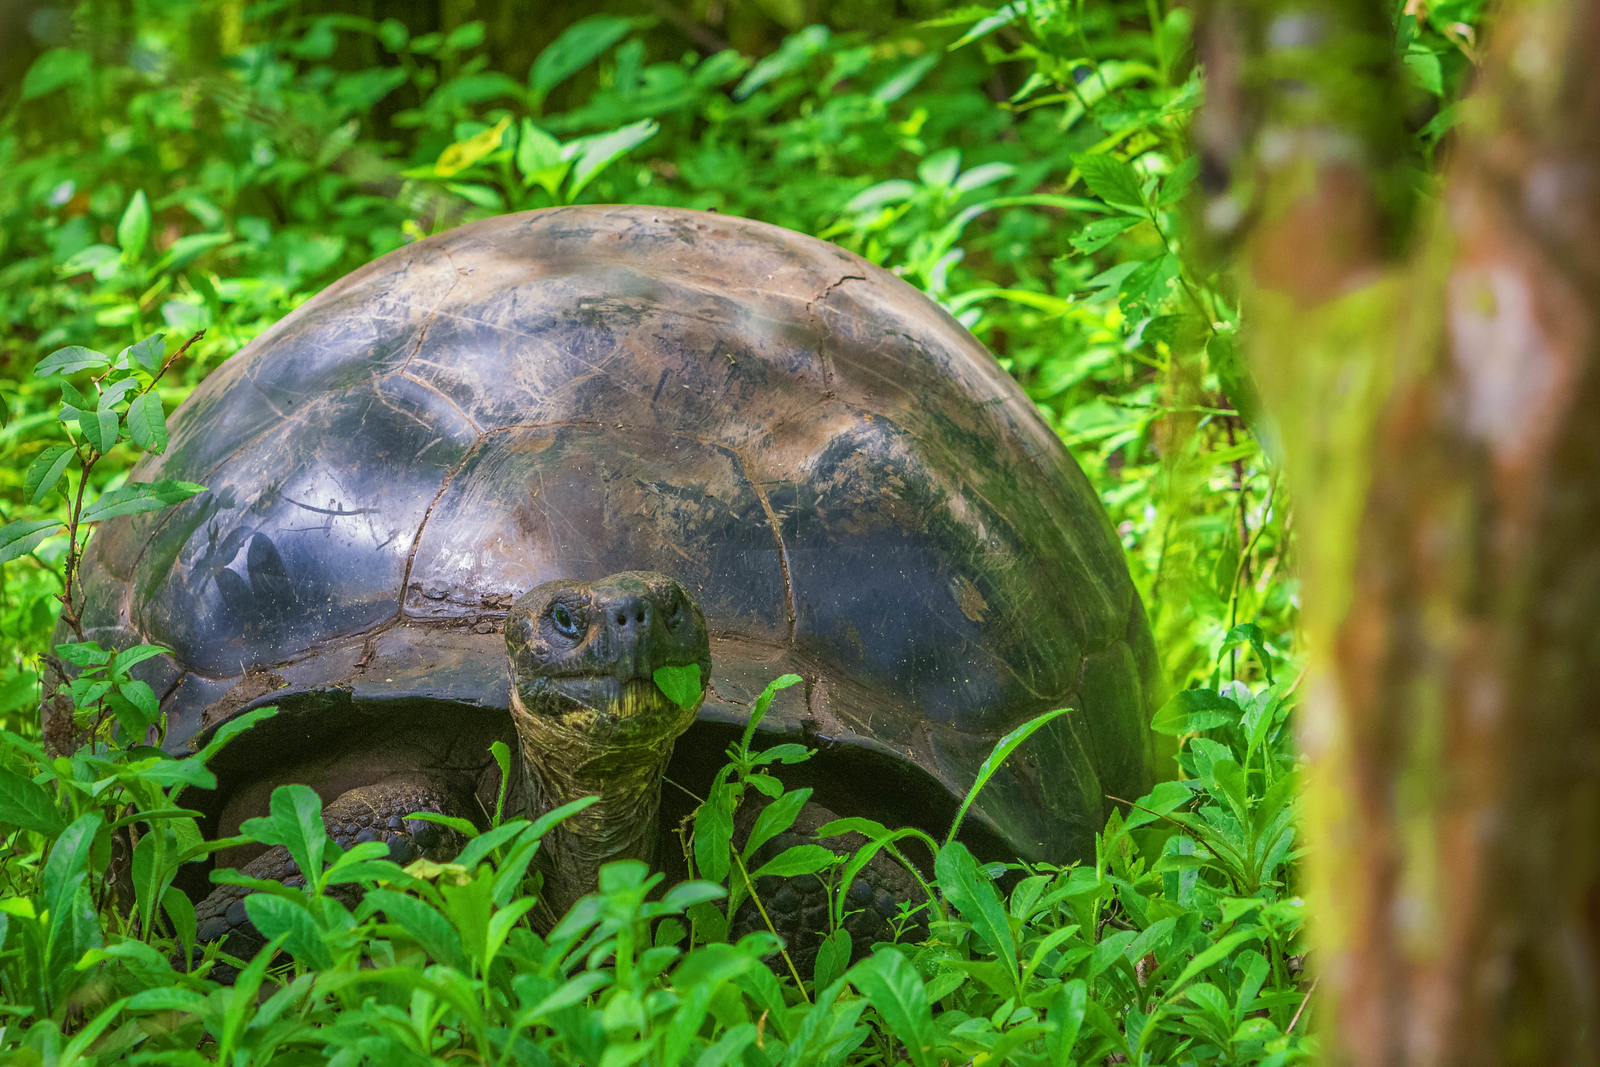 The Giant Tortoise is everywhere on the Galapagos Islands. Especially on Santa Cruz and Isabela Island.